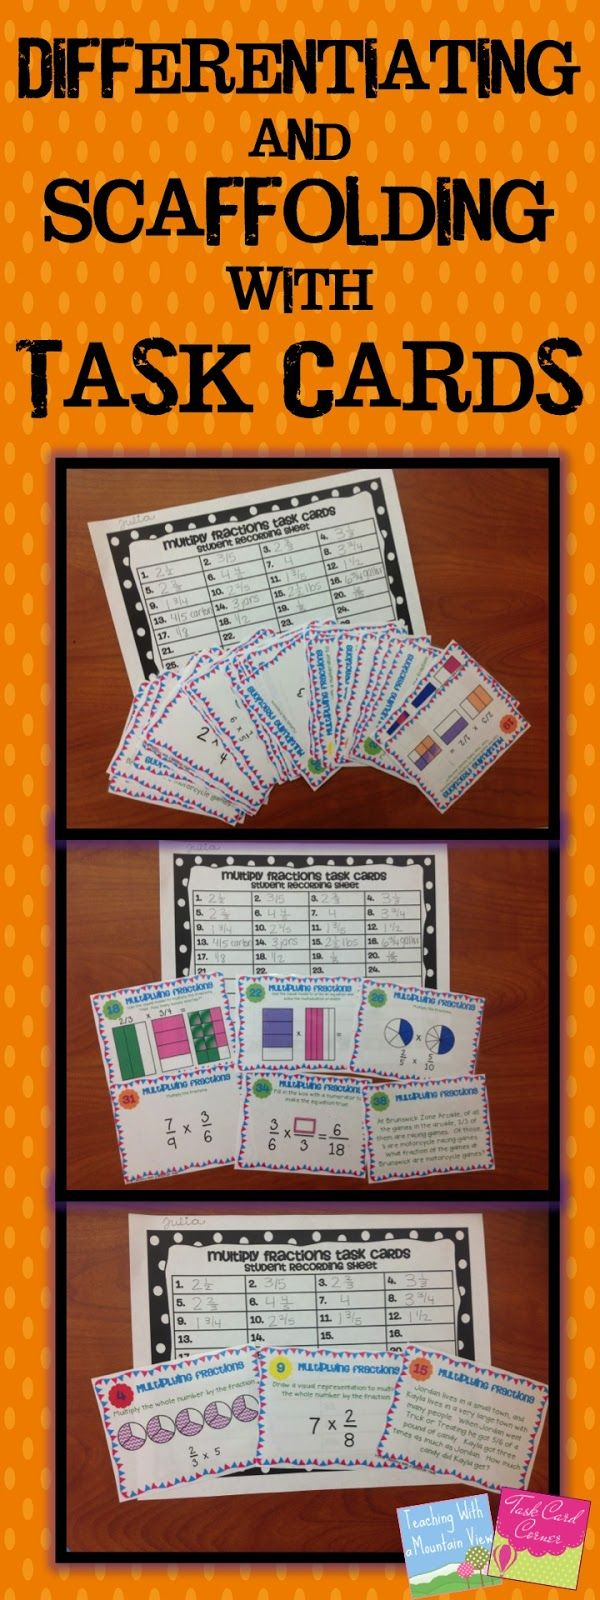 Differentiating and Scaffolding Instruction with Task Cards